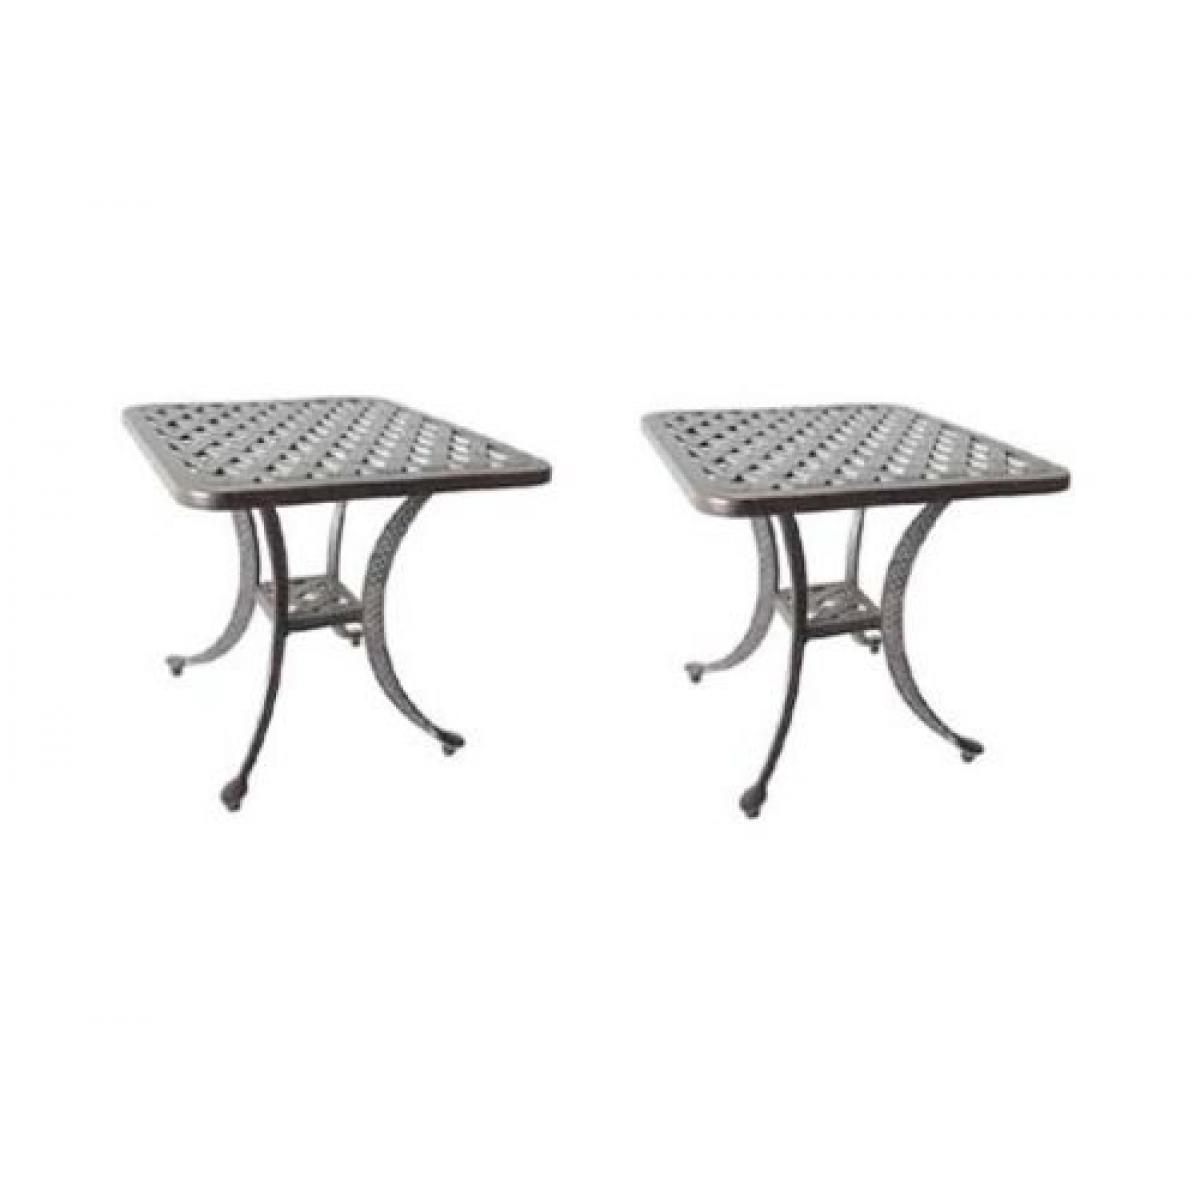 patio end table outdoor furniture side tables nassau cast aluminum accent bronze pottery barn dishes drum throne top collapsible coffee ikea lamp with usb port for sofas black